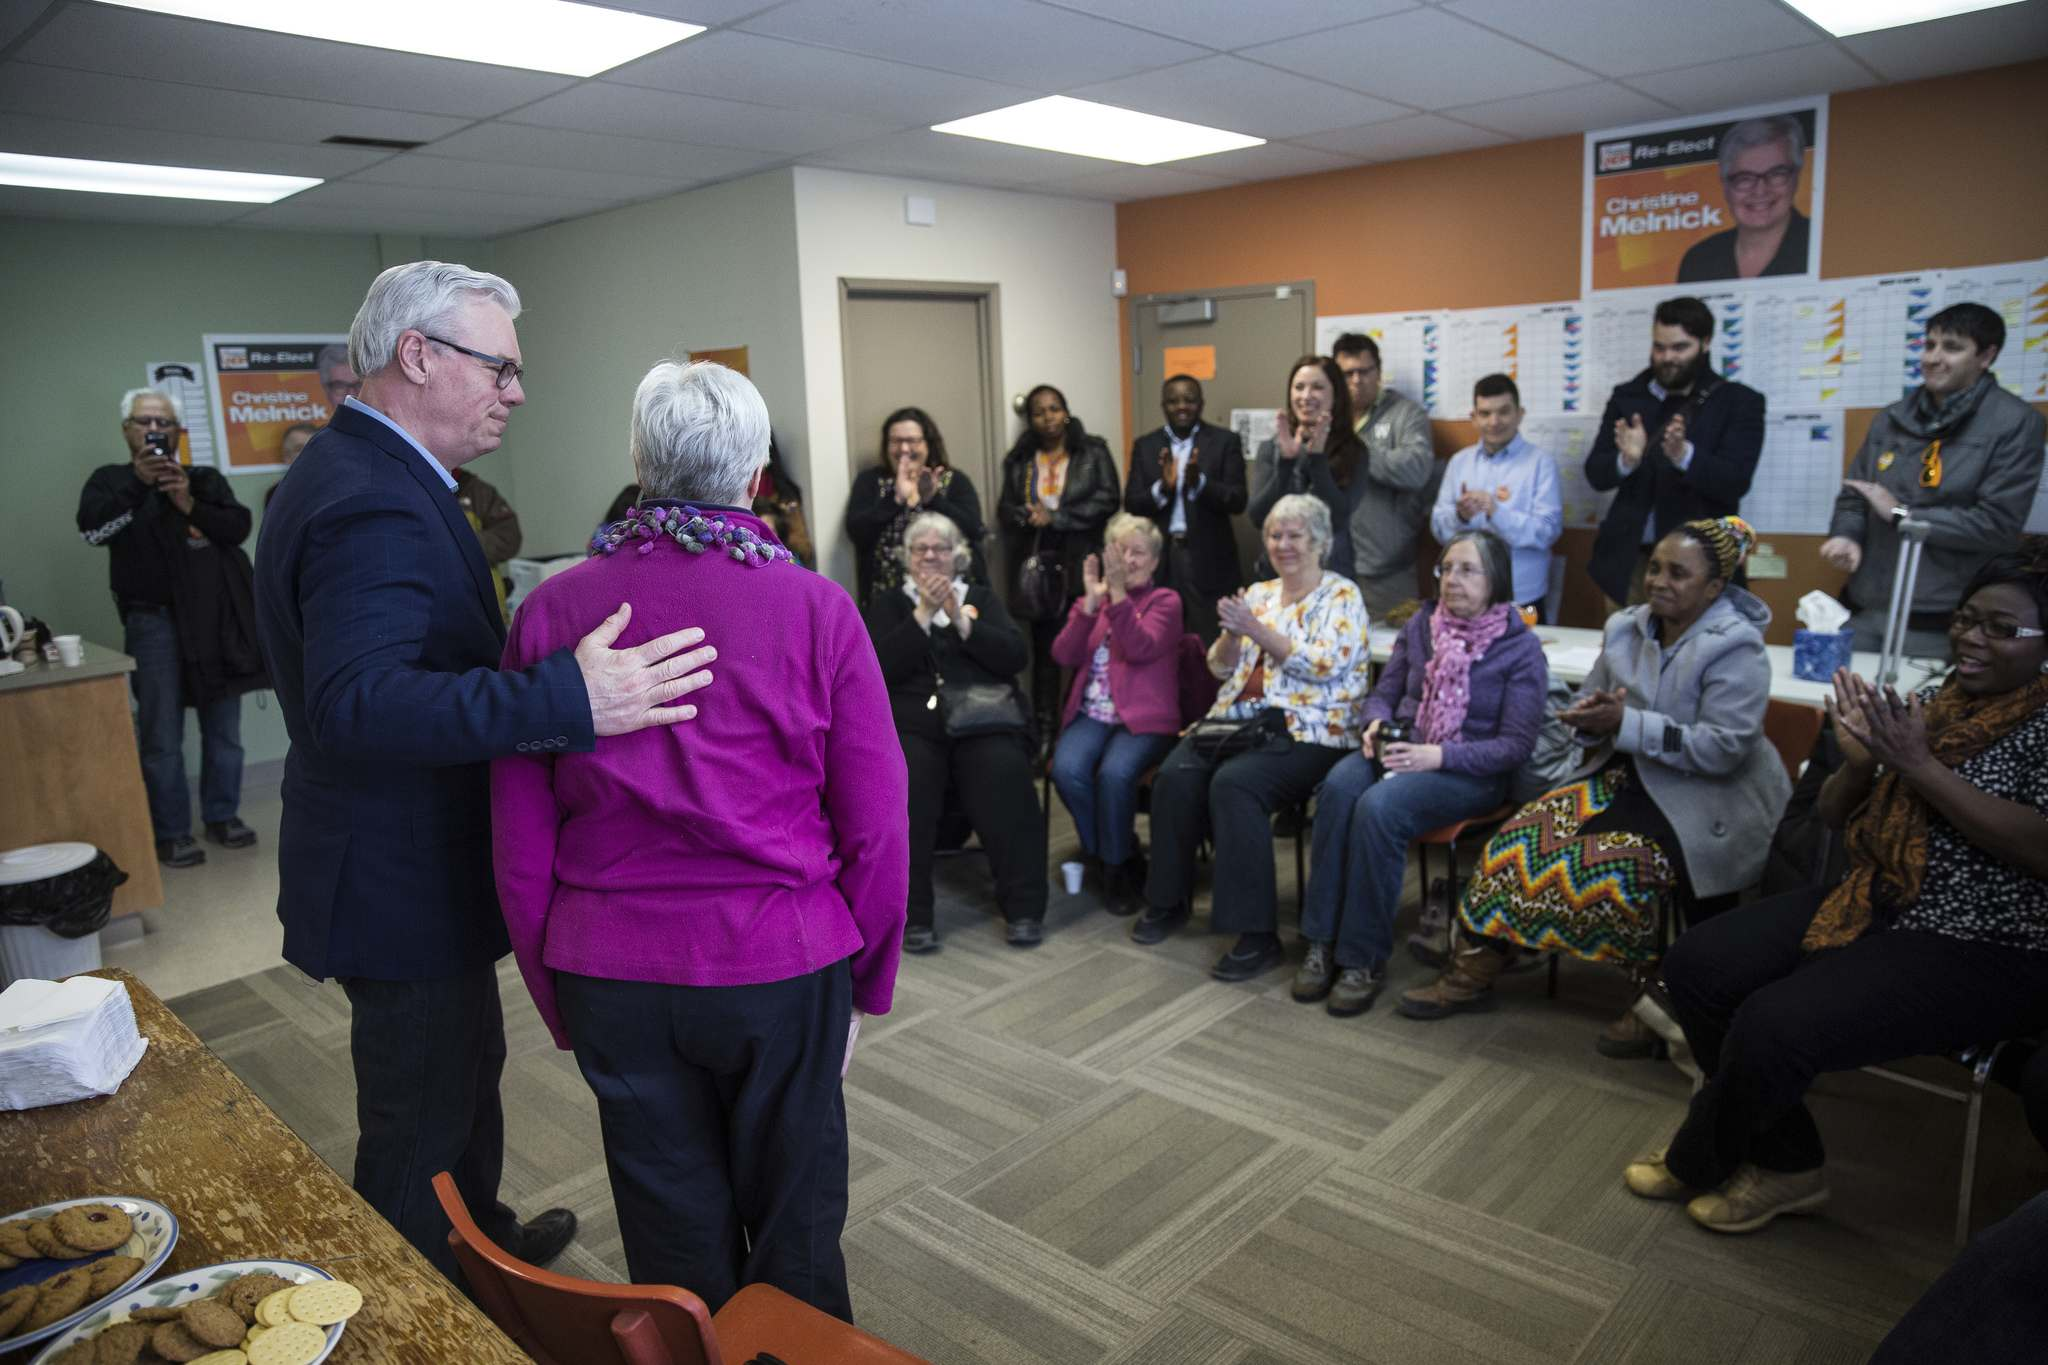 MIKE DEAL / WINNIPEG FREE PRESS</p><p>Despite past infighting, Selinger has worked to support remaining veteran NDP incumbents, including Riel MLA Christine Melnick.</p></p>